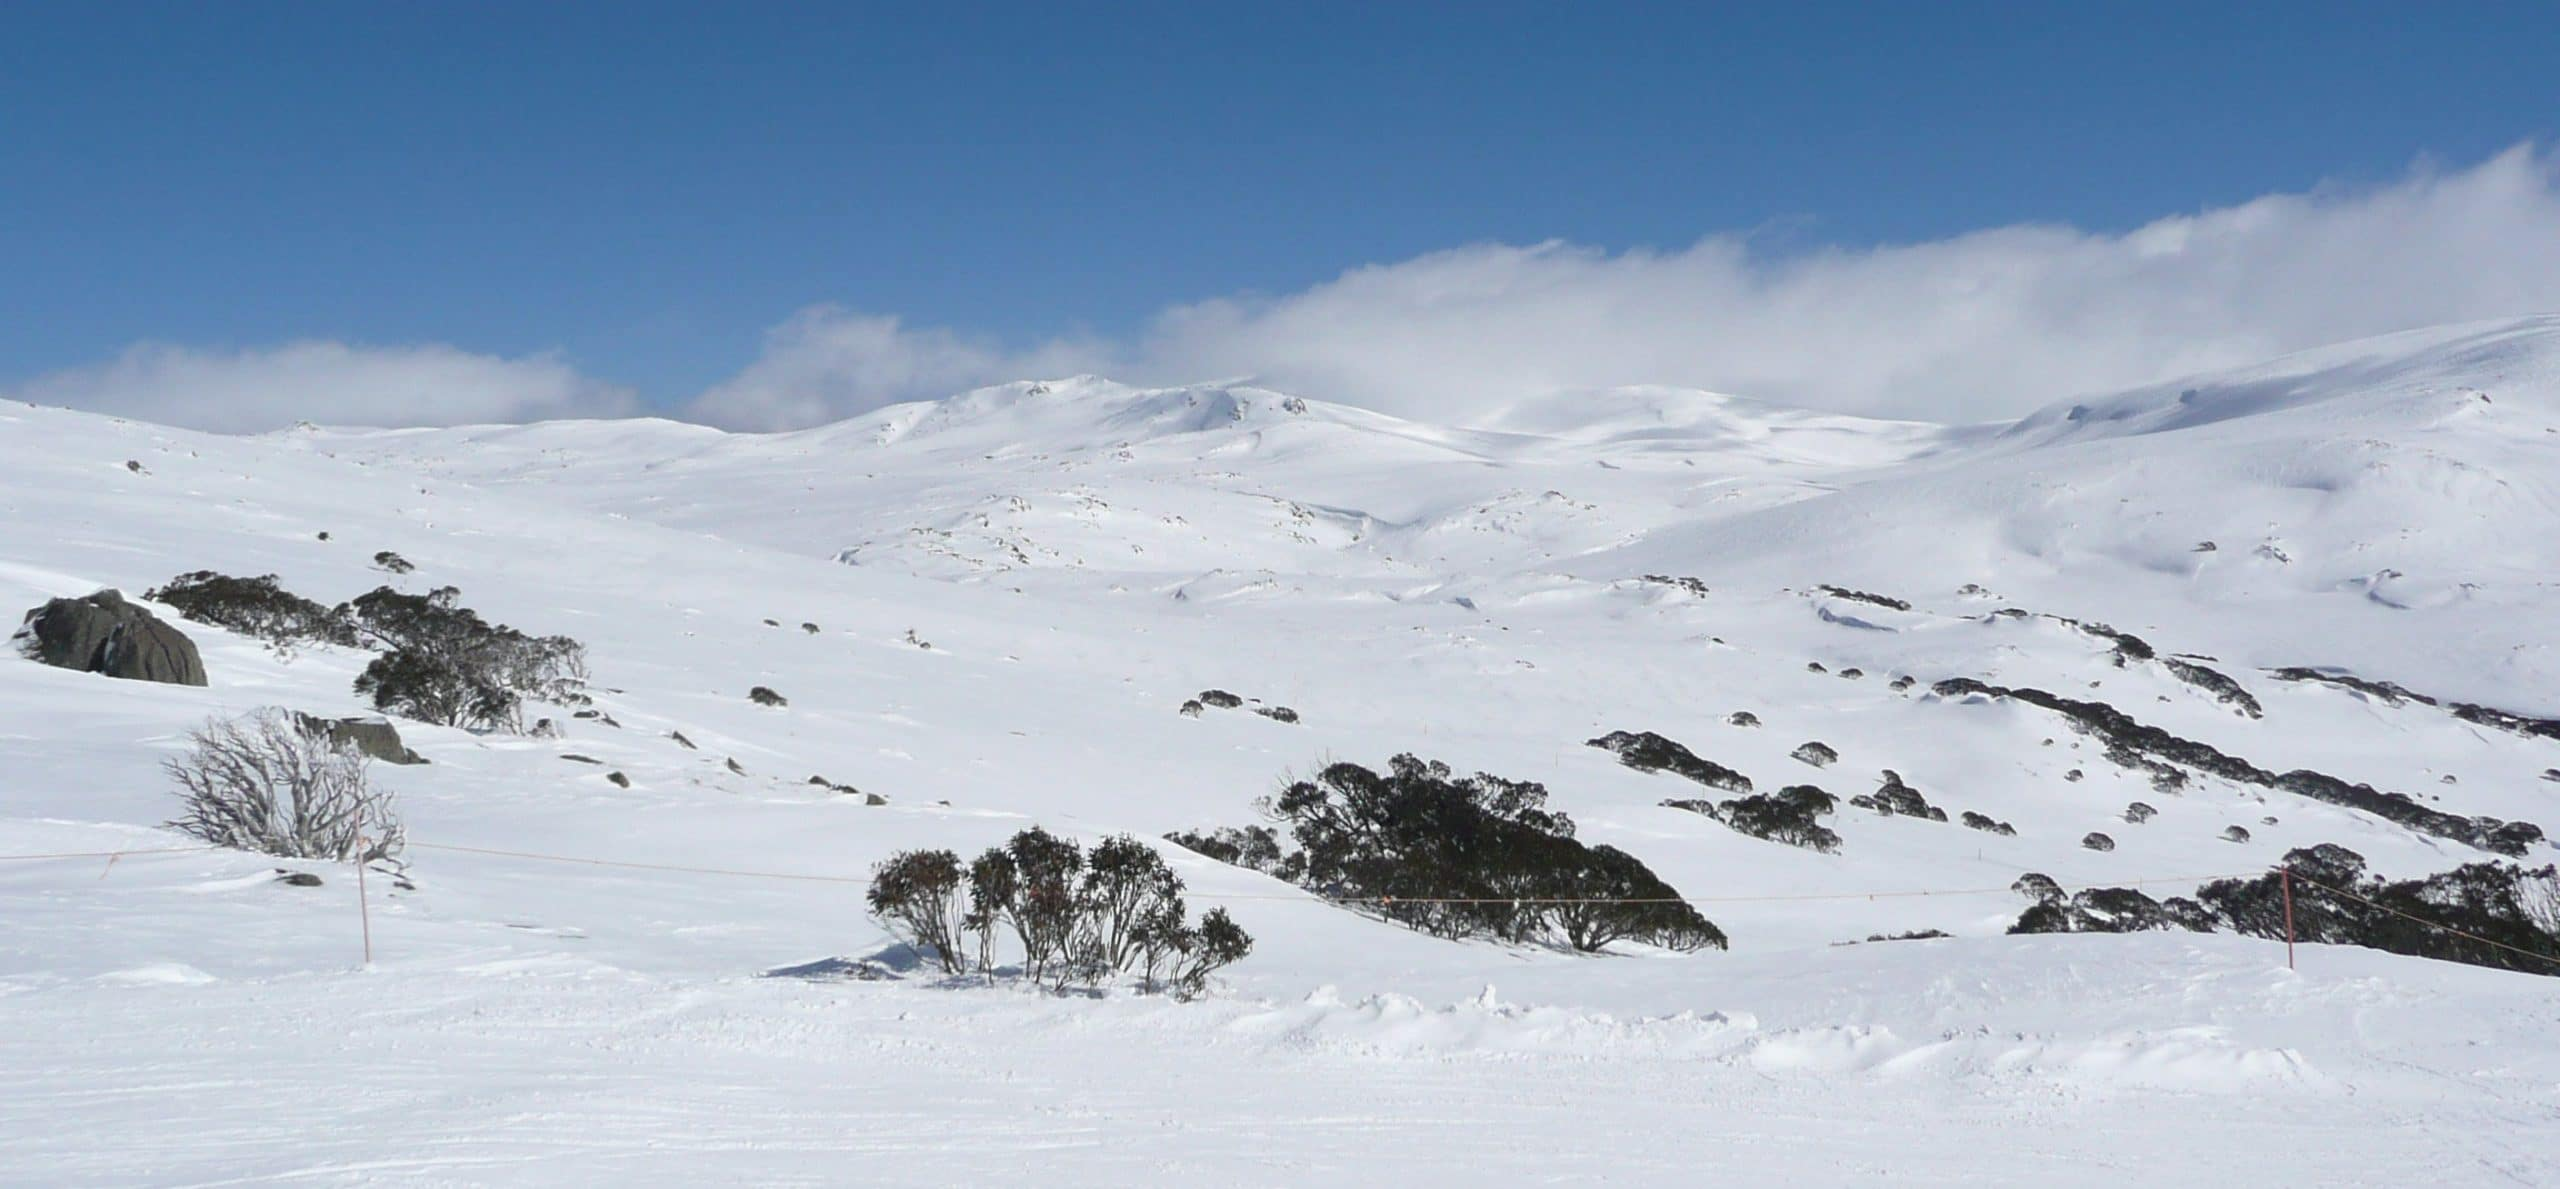 Towards_Kosciuszko_from_Kangaroo_Ridge_in_winter